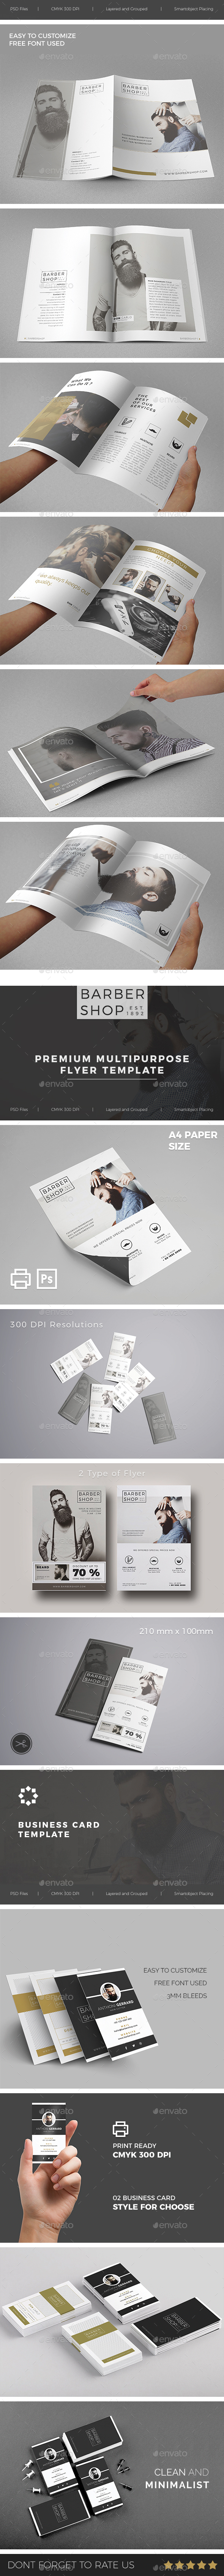 Barbershop Template Bundle - Print Templates